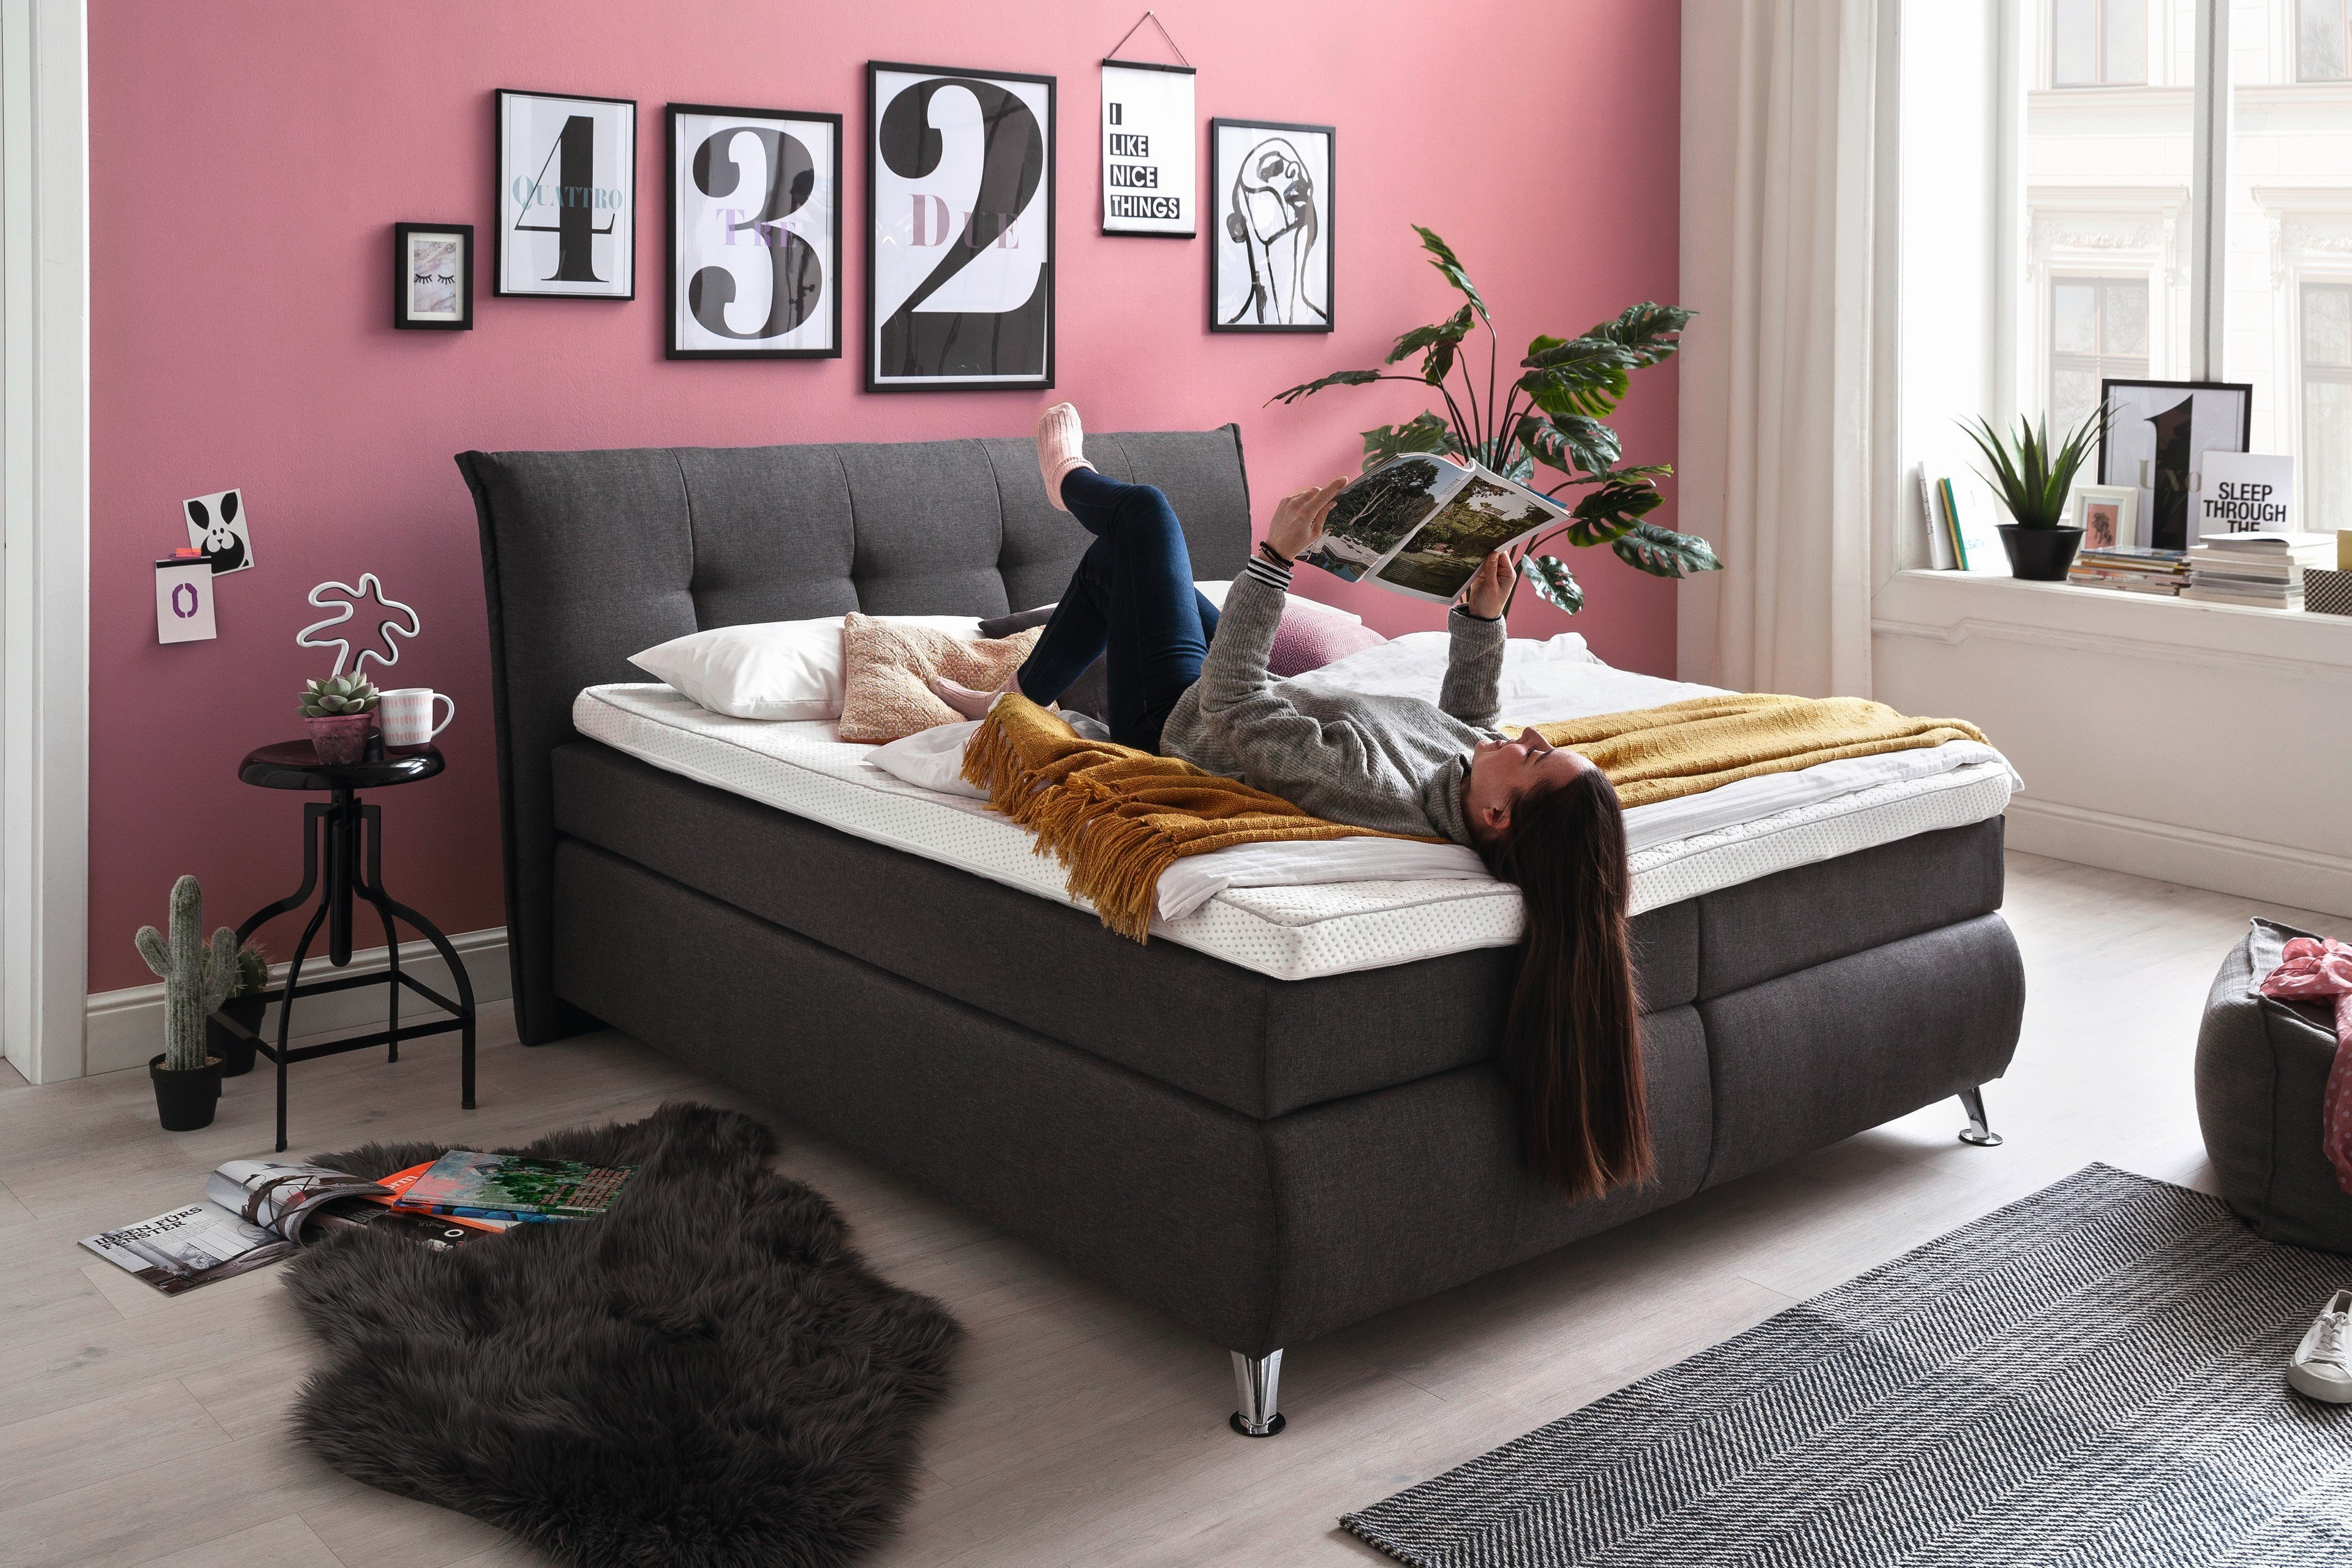 hapo lexos boxspringbett in anthrazit m bel letz ihr. Black Bedroom Furniture Sets. Home Design Ideas